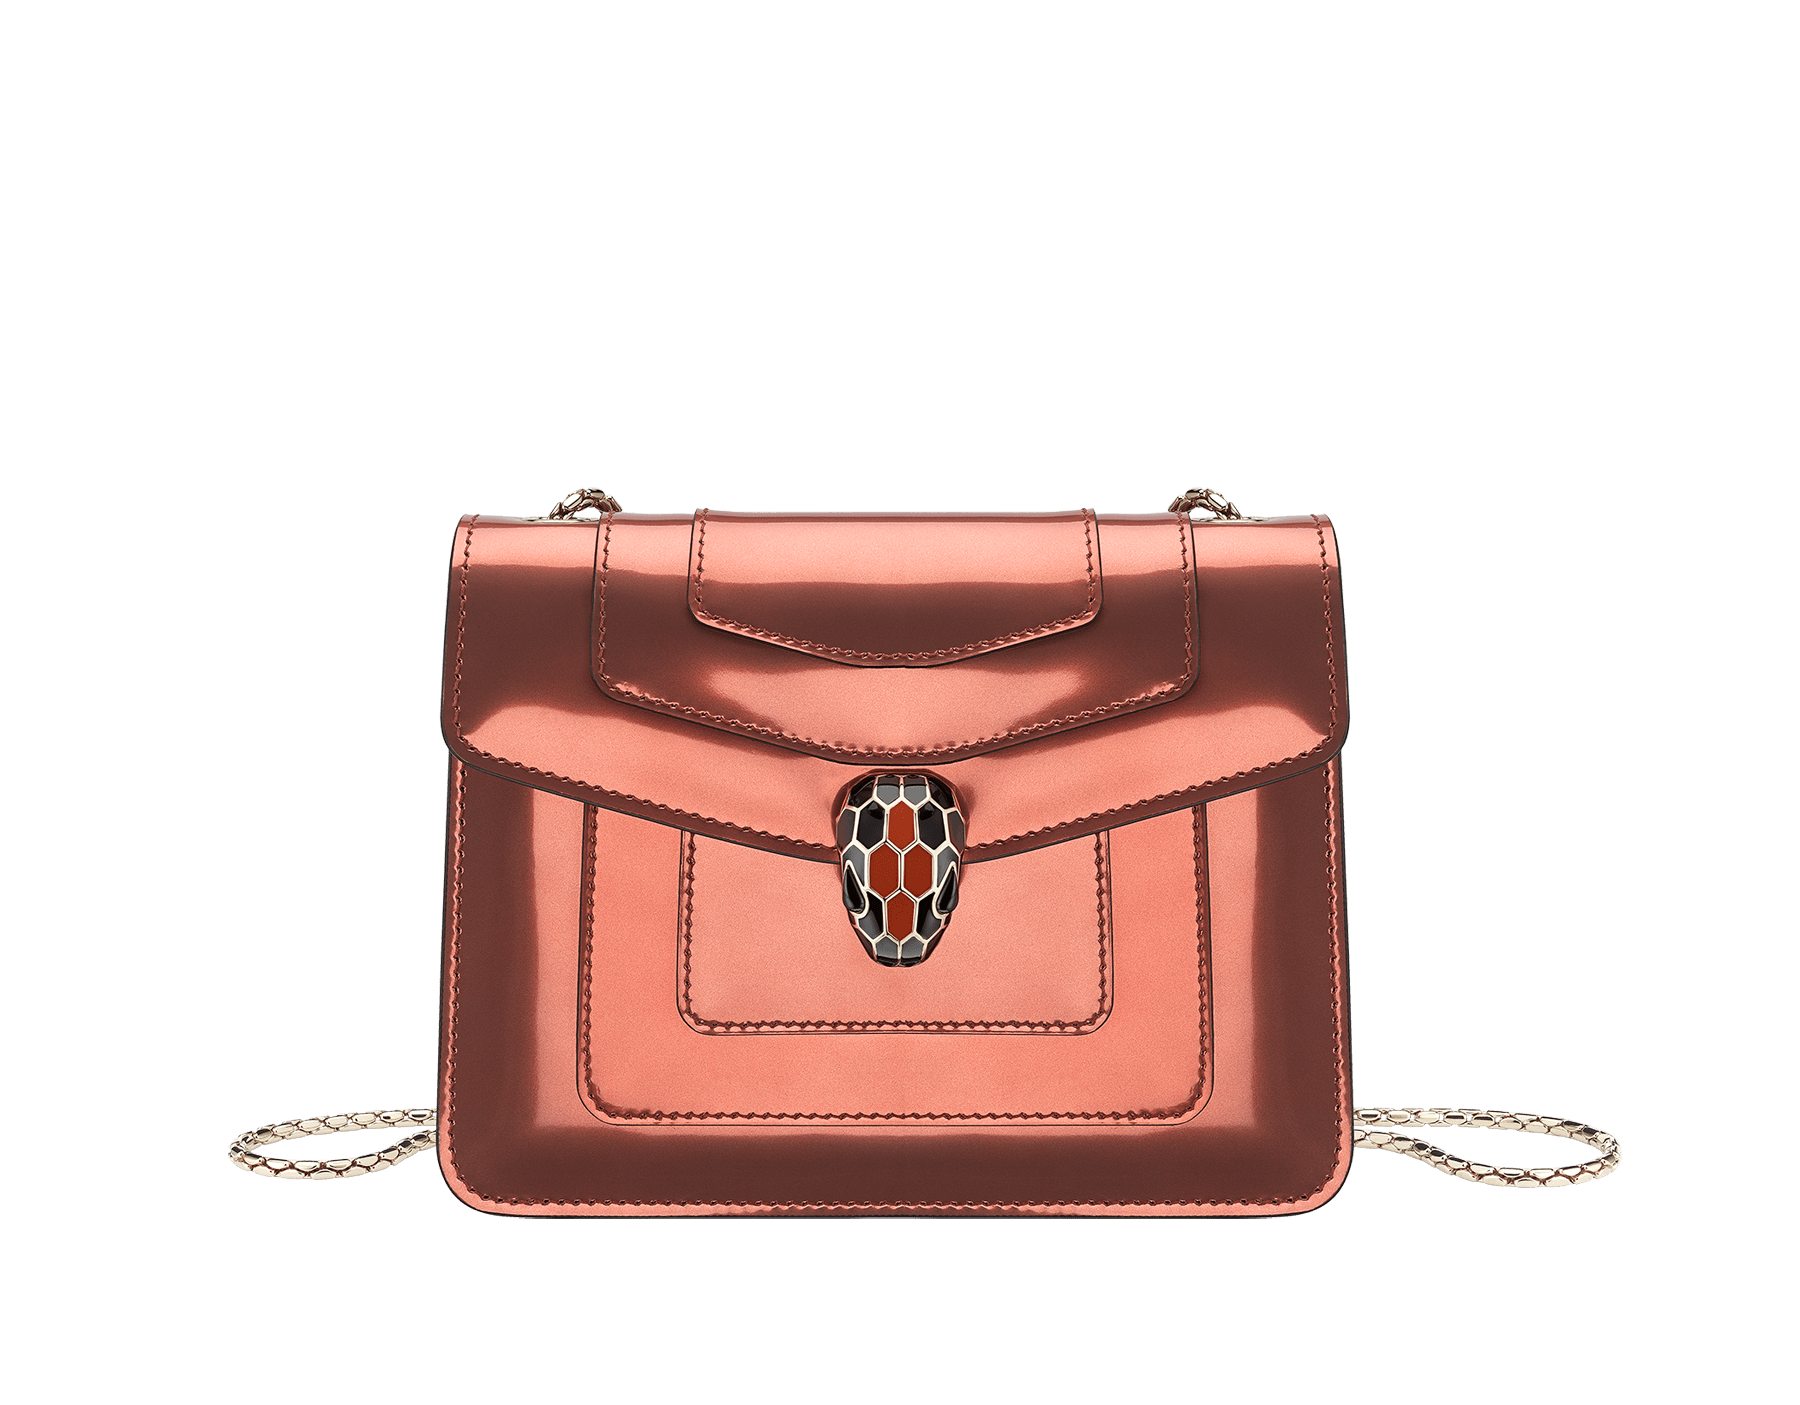 """Serpenti Forever"" crossbody bag in imperial topaz brushed metallic calf leather and tone-on-tone smooth calf leather. Iconic snakehead closure in light gold plated brass embellished with black and imperial topaz enamel and black onyx eyes. 288886 image 1"